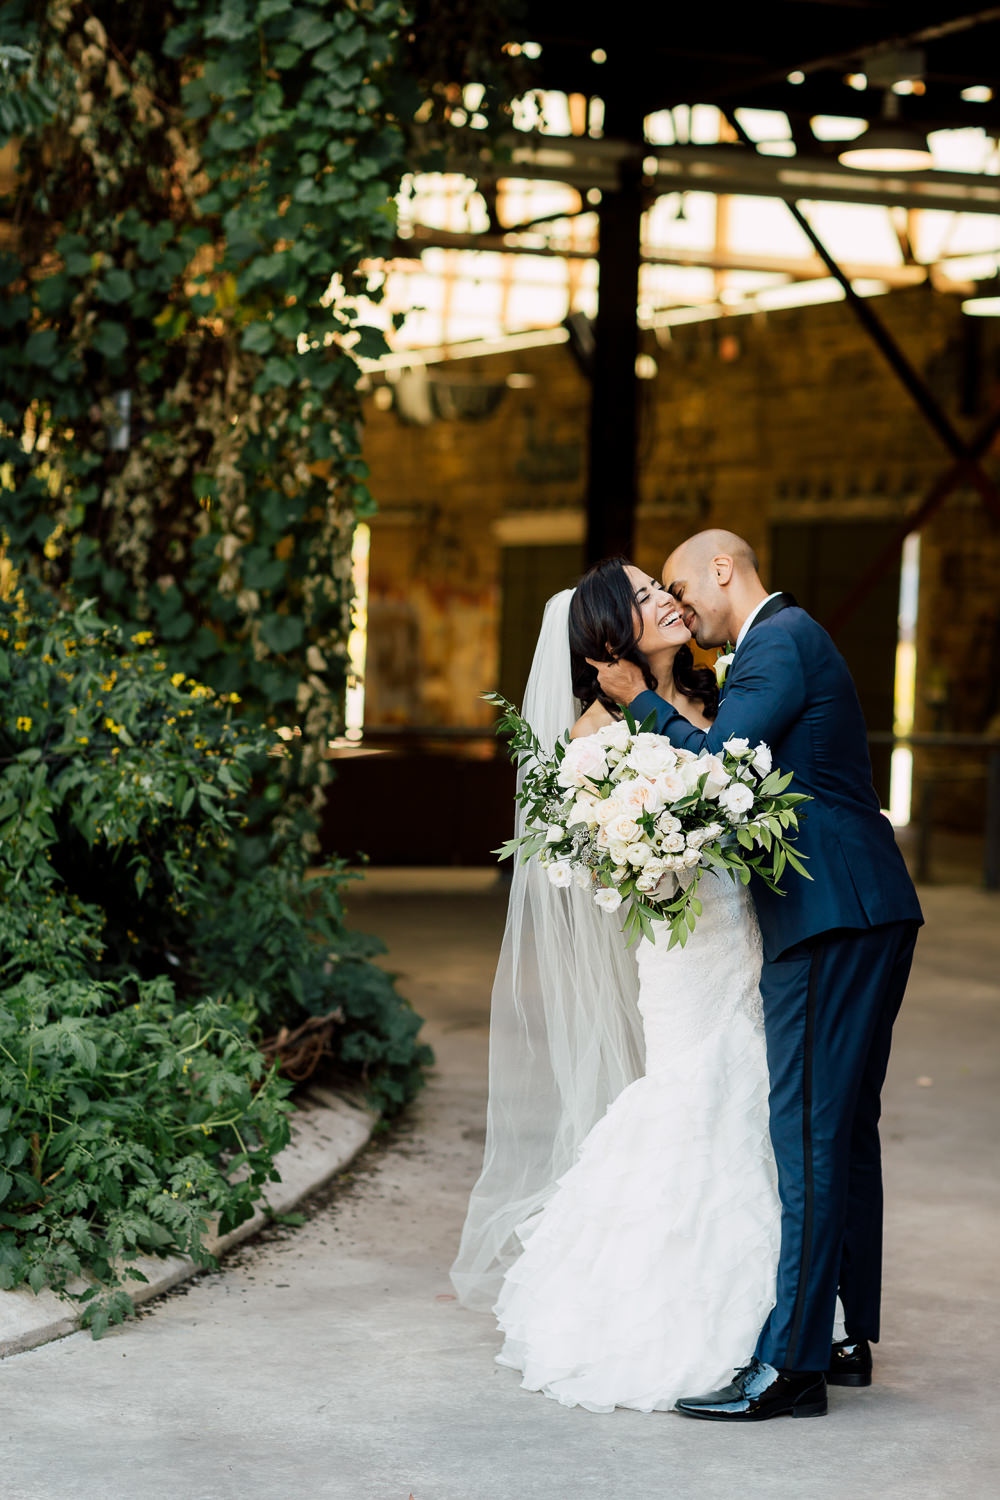 Wedding at Evergreen Brick Works